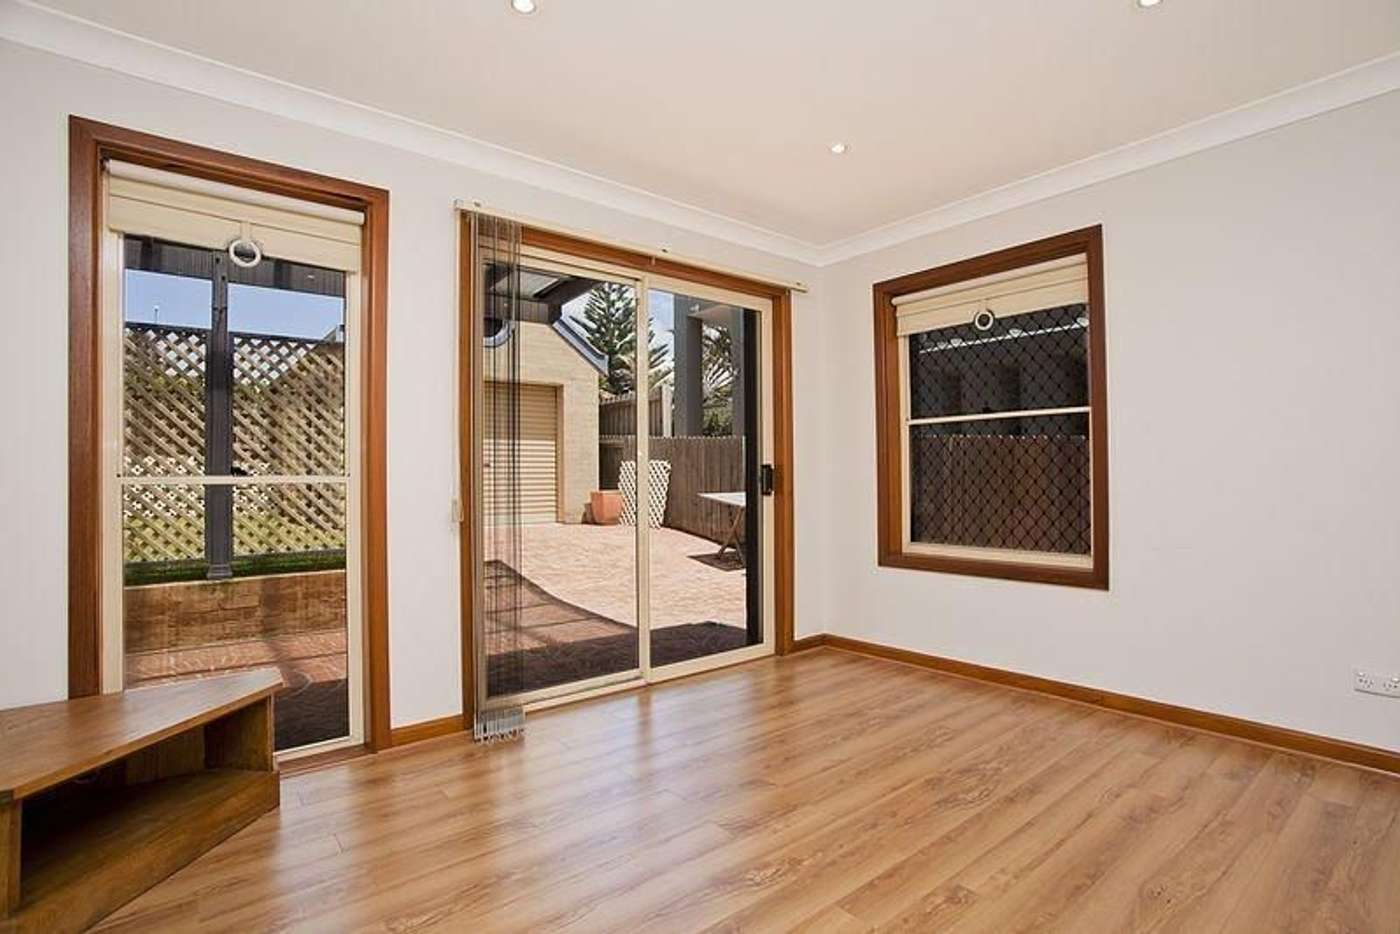 Main view of Homely apartment listing, 23A Banks Street, Maroubra NSW 2035